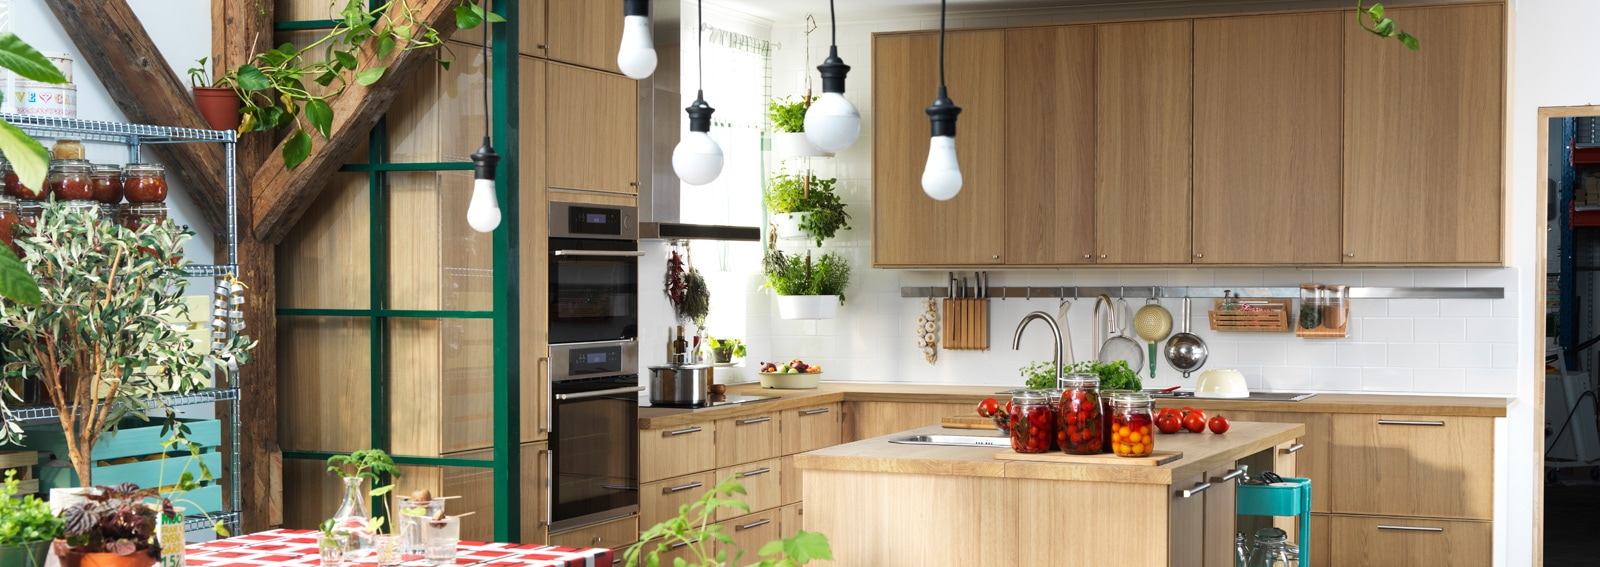 Emejing Cucine Ikea Catania Photos - Design & Ideas 2017 - candp.us